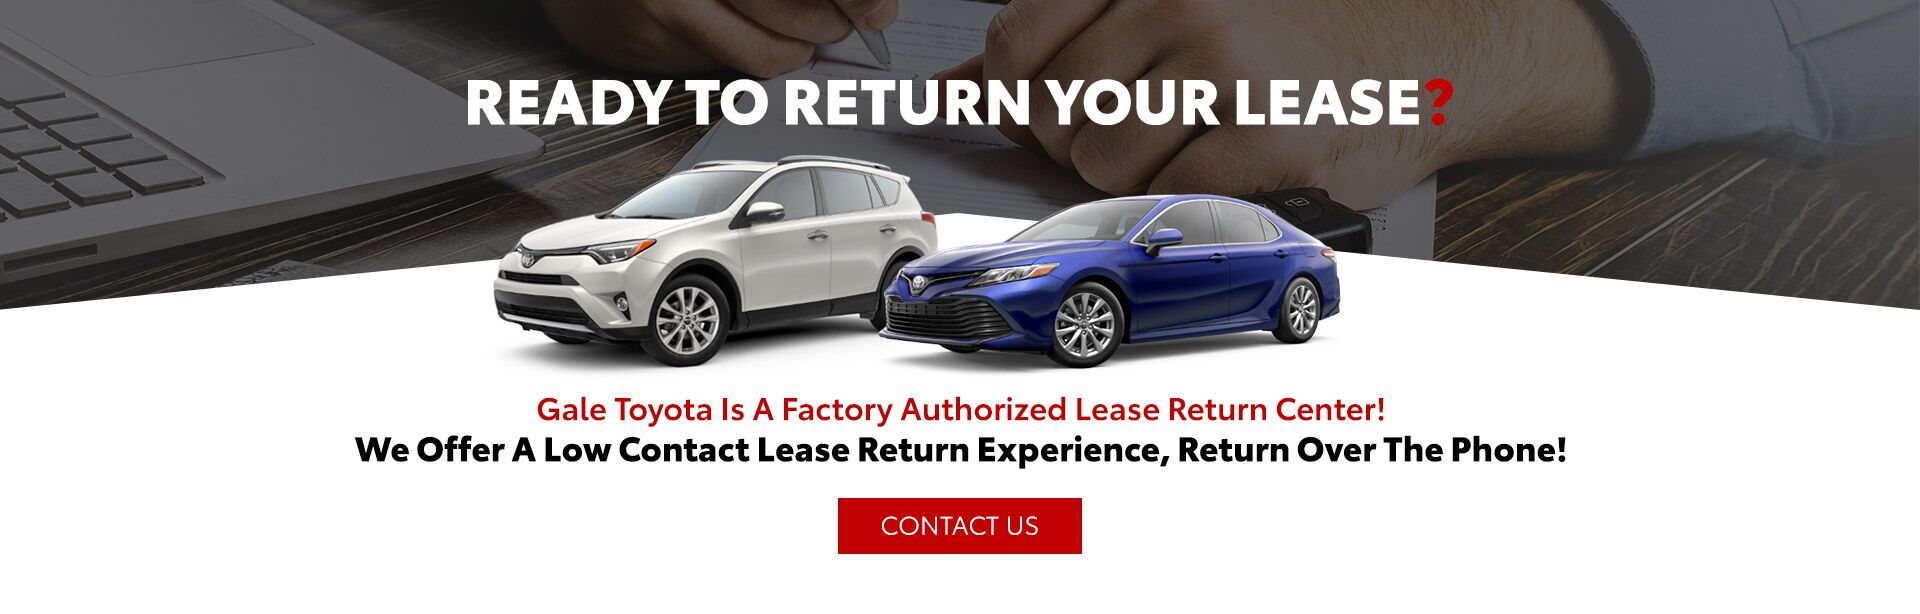 Lease Return Slide